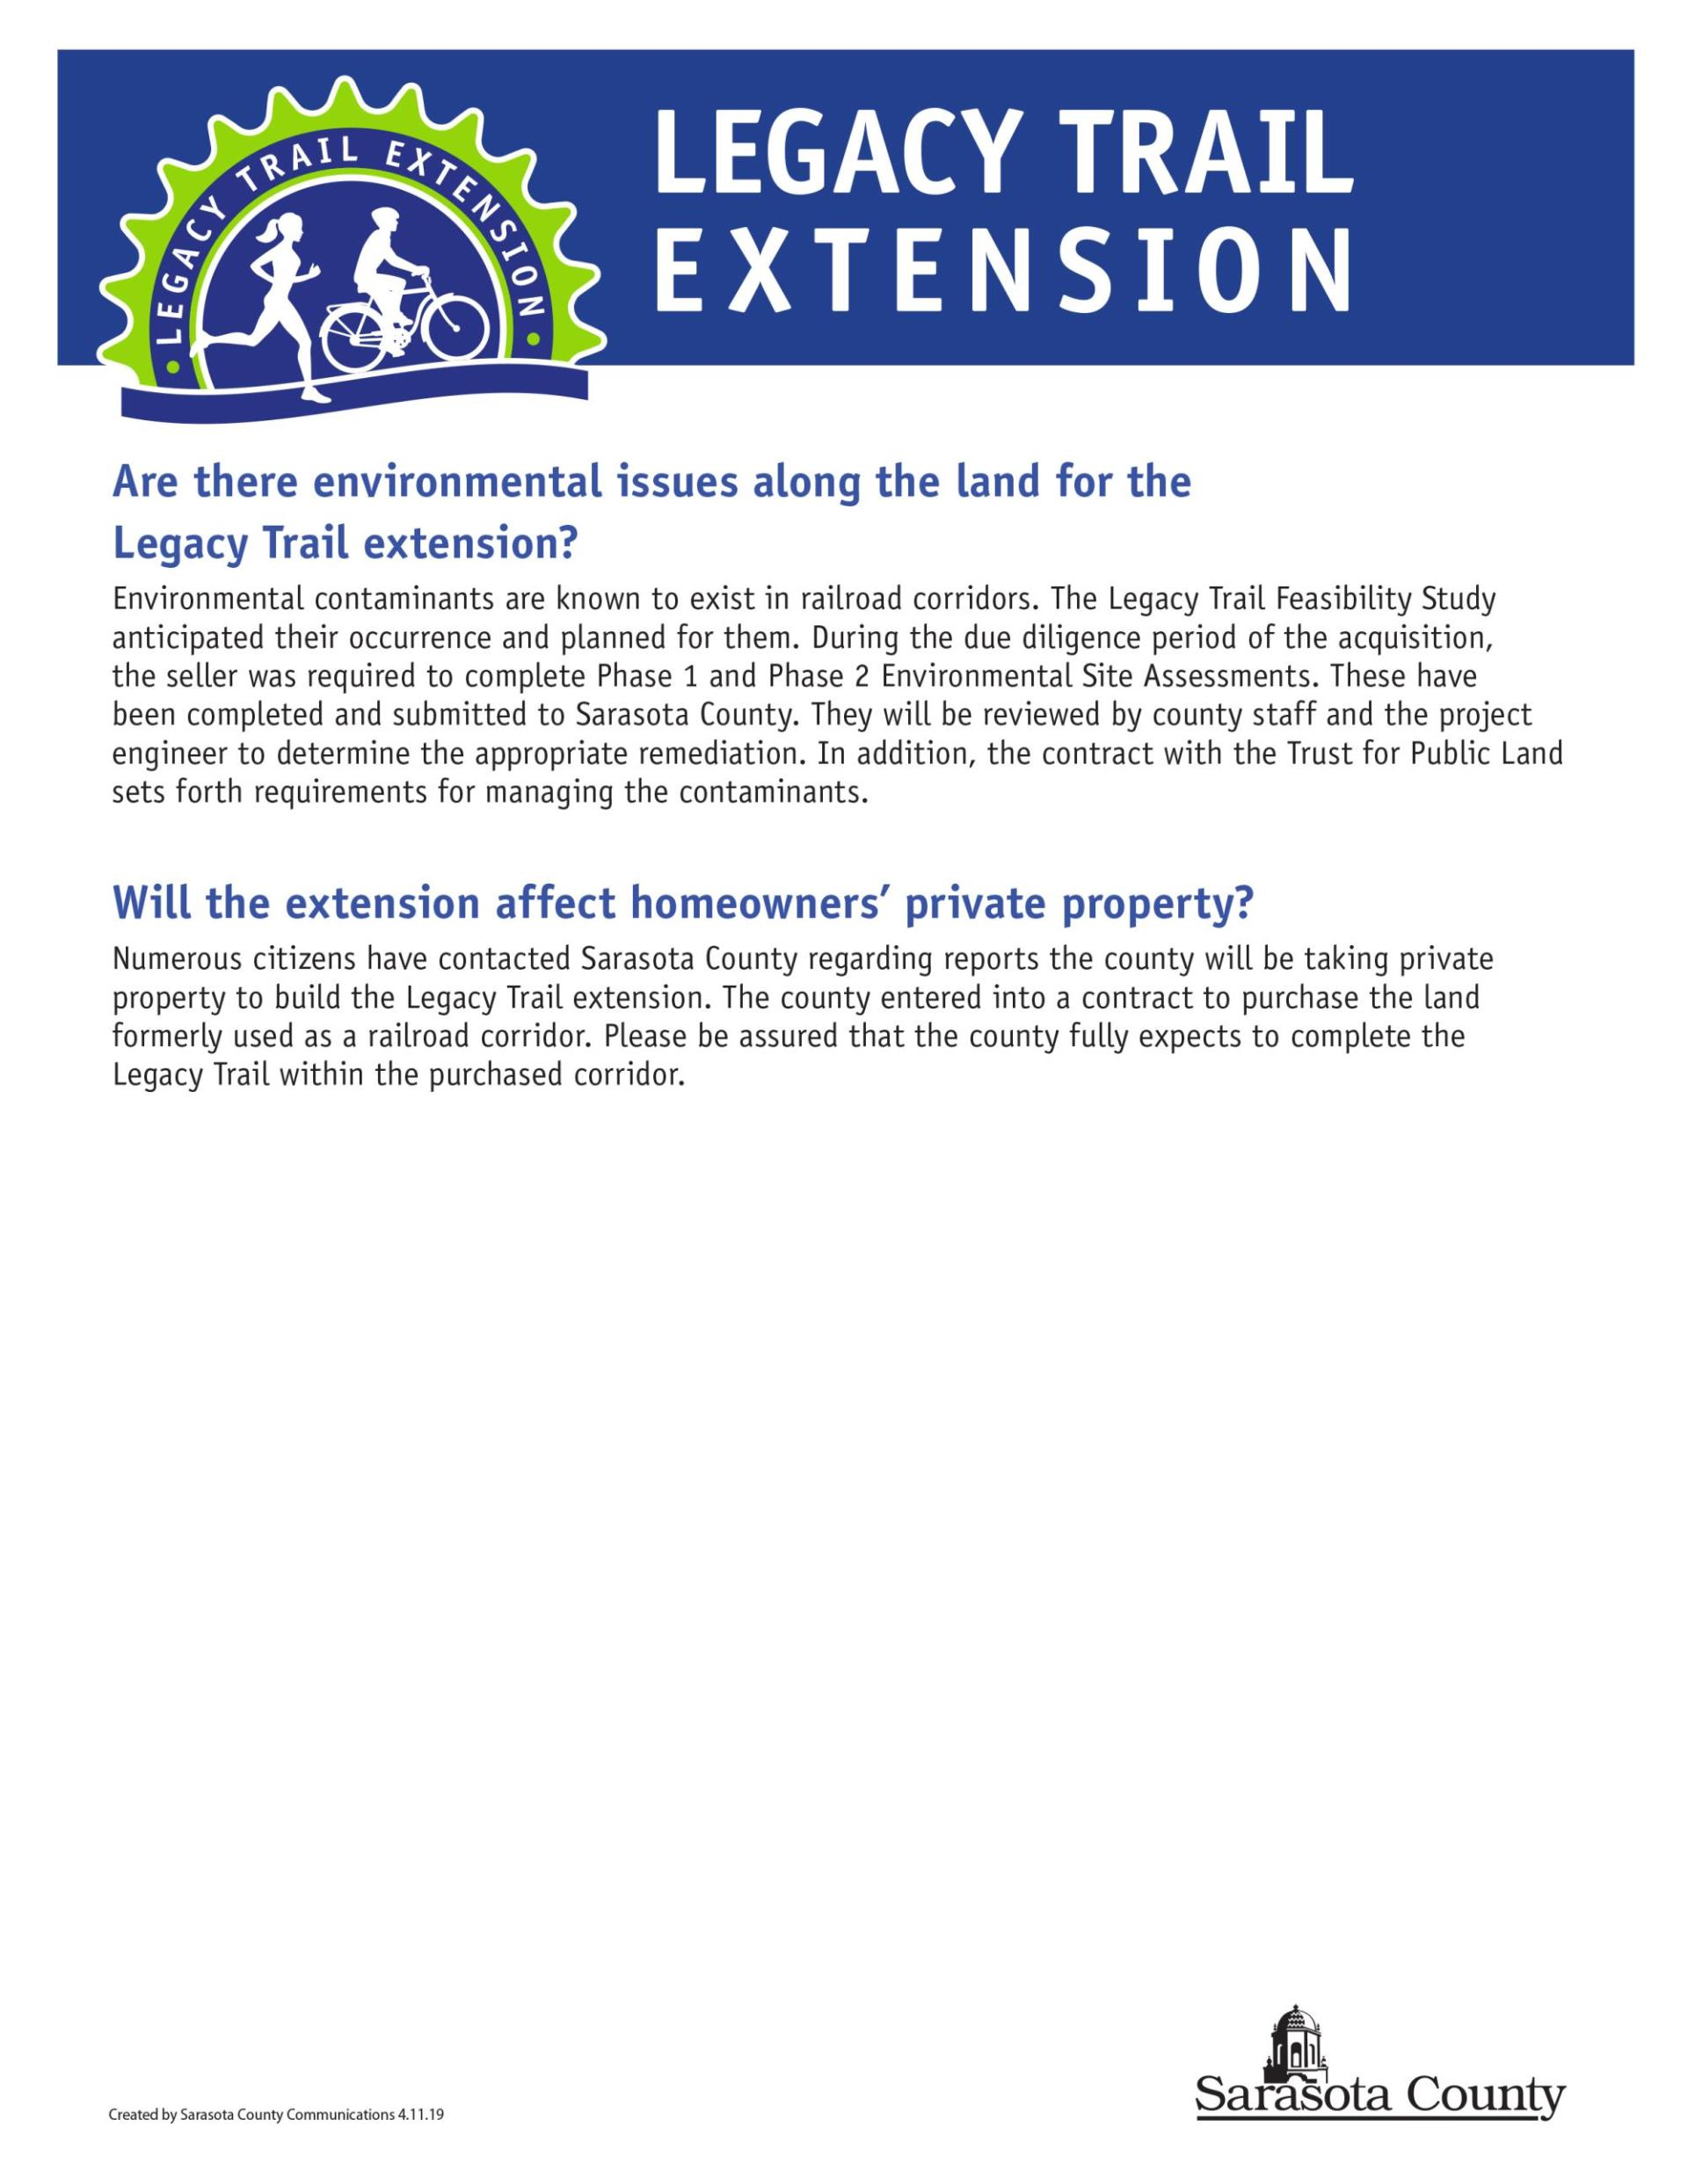 Frequently Asked Questions about the Legacy Trail Extension